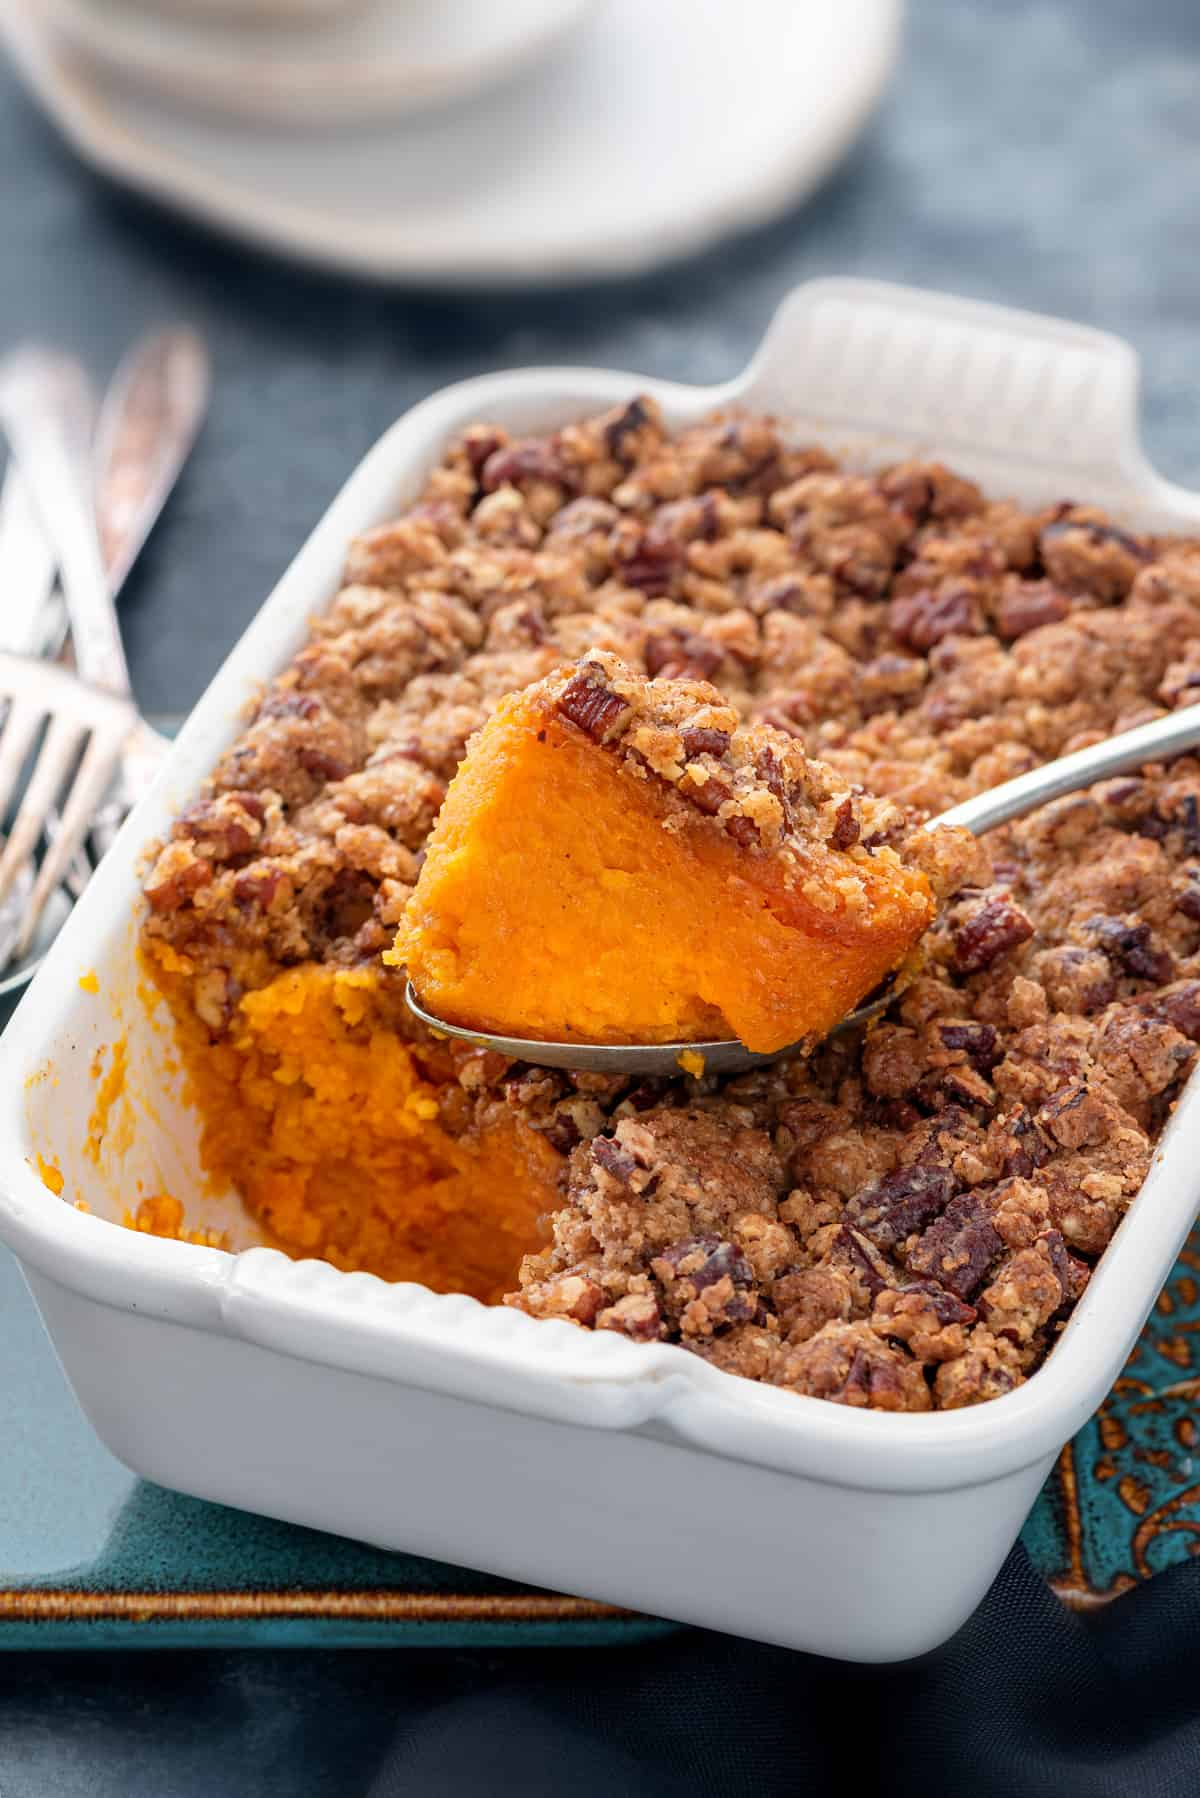 A casserole dish with a large scoop of sweet potato casserole taken out with the spoon.